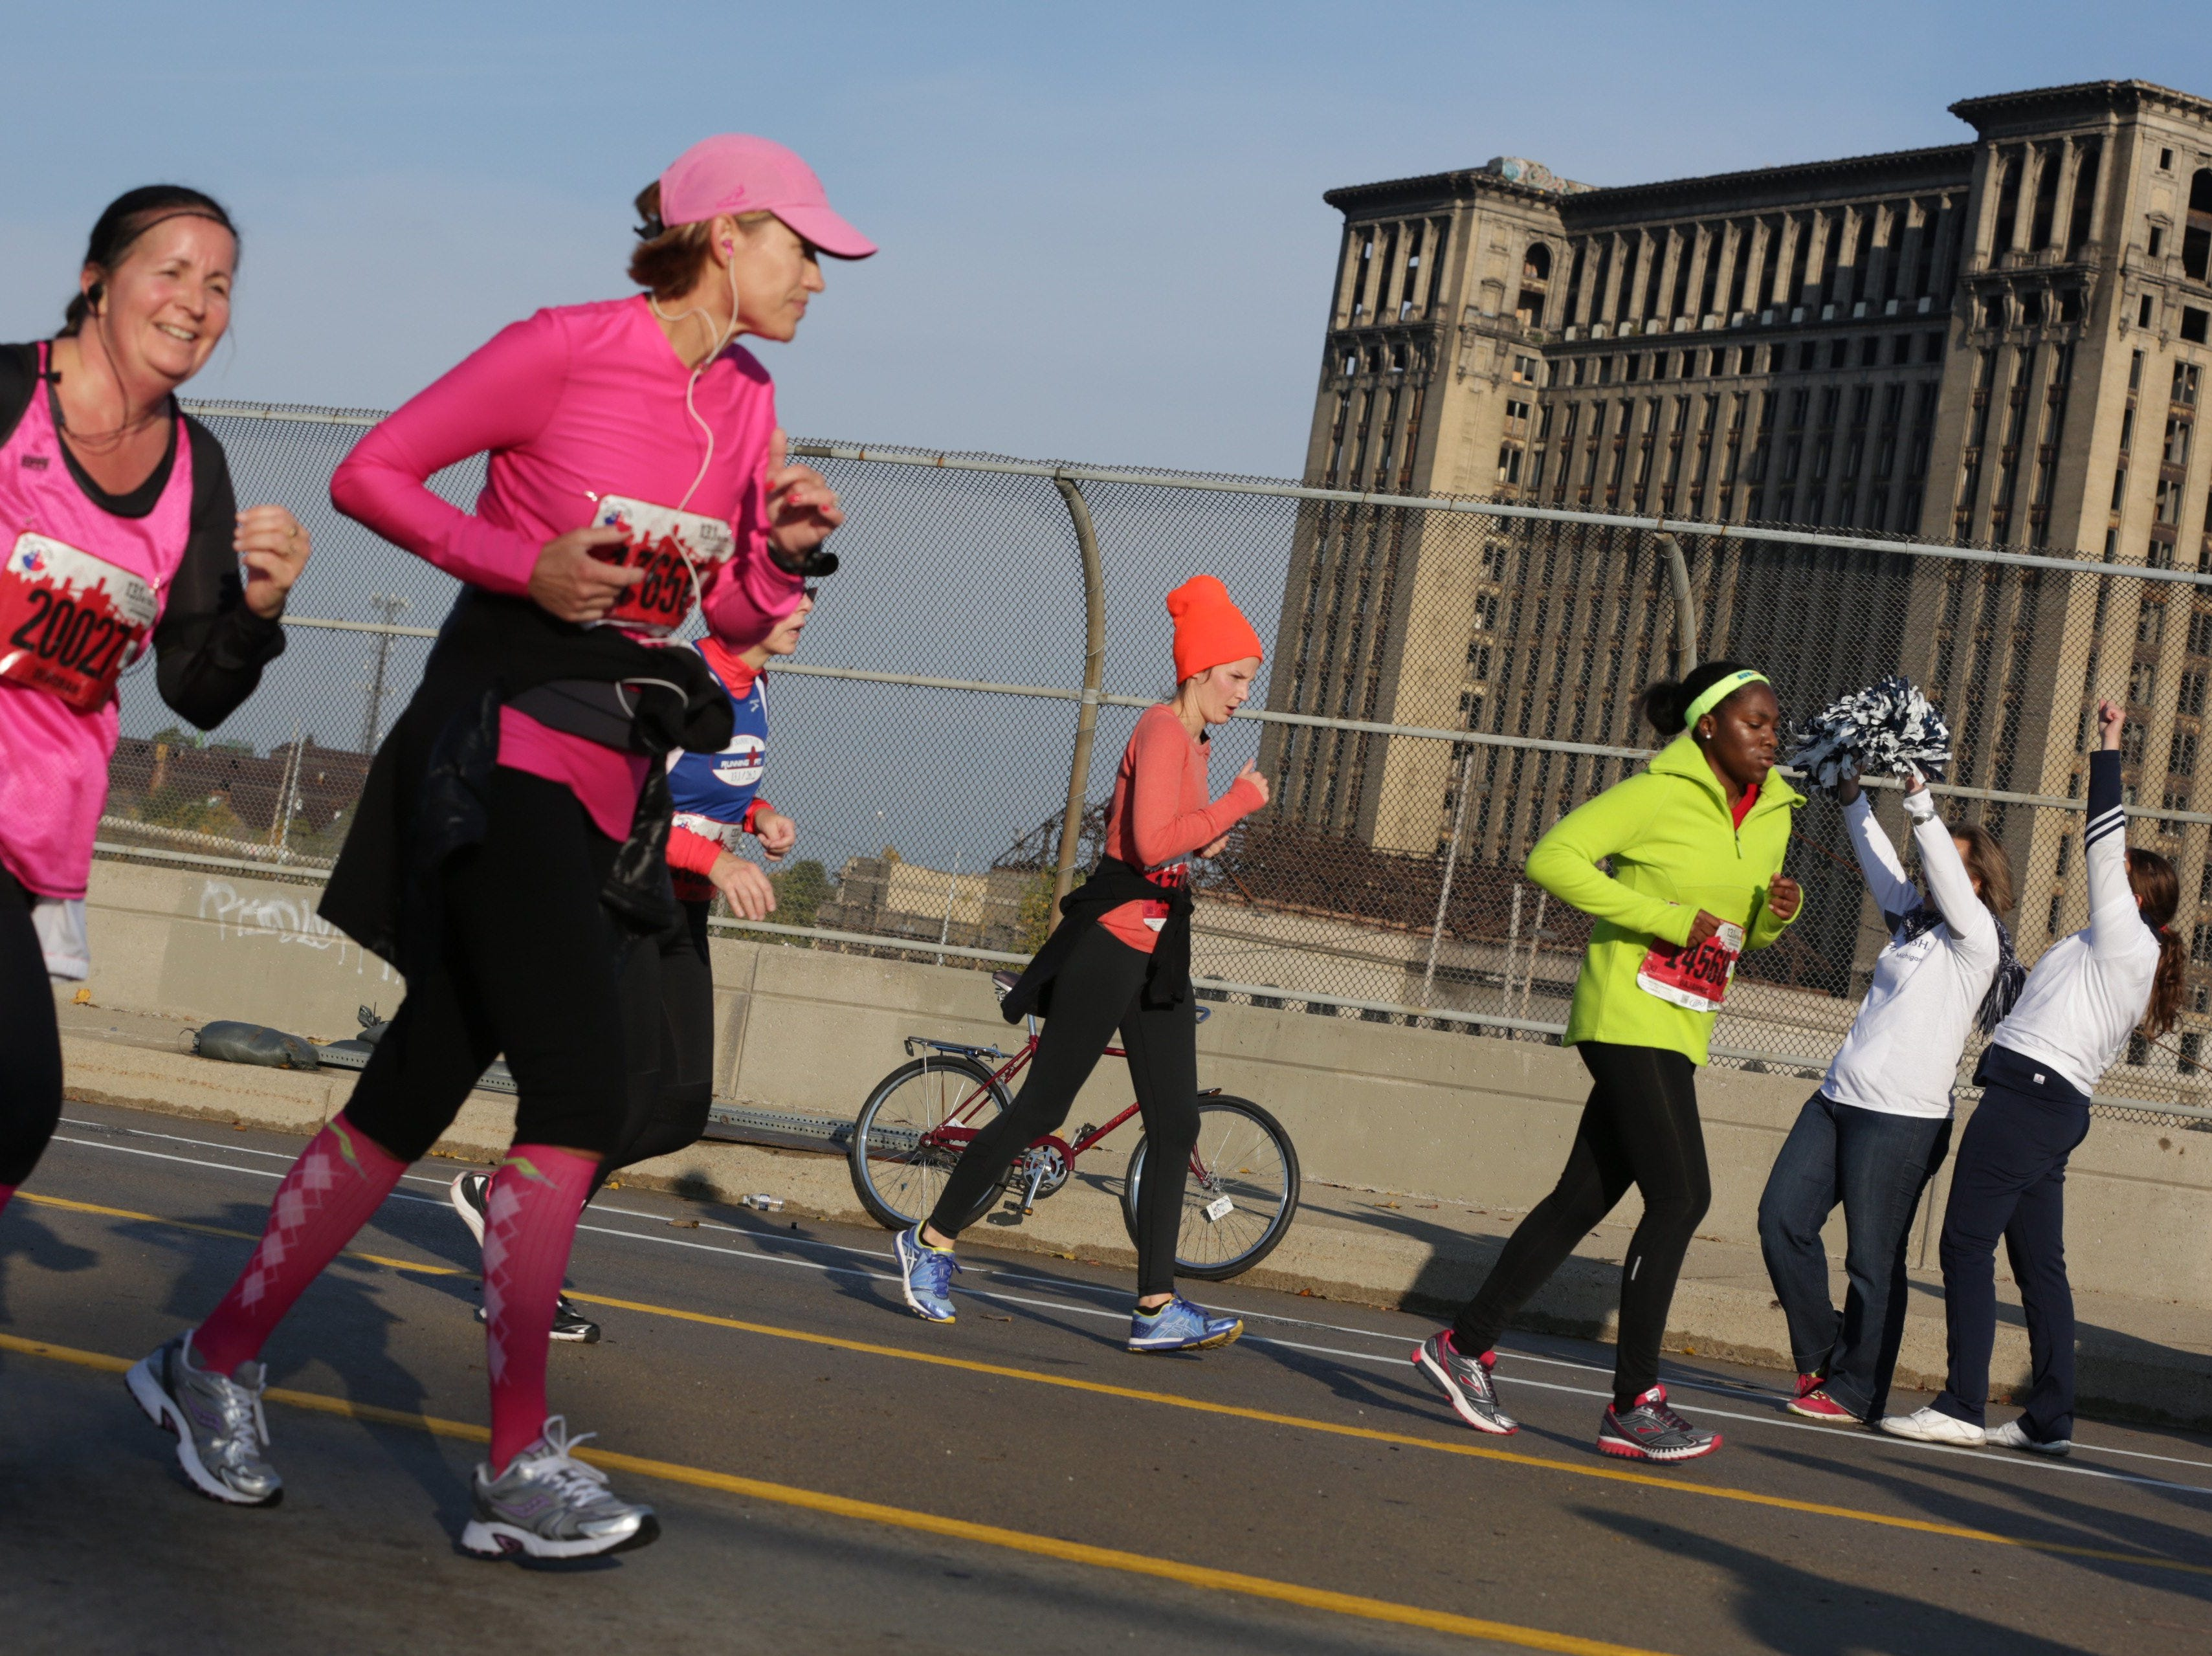 Runners on Bagley street during the 36th Annual Detroit Free Press/Talmer Bank Marathon in Detroit on Sunday, Oct. 20, 2013.